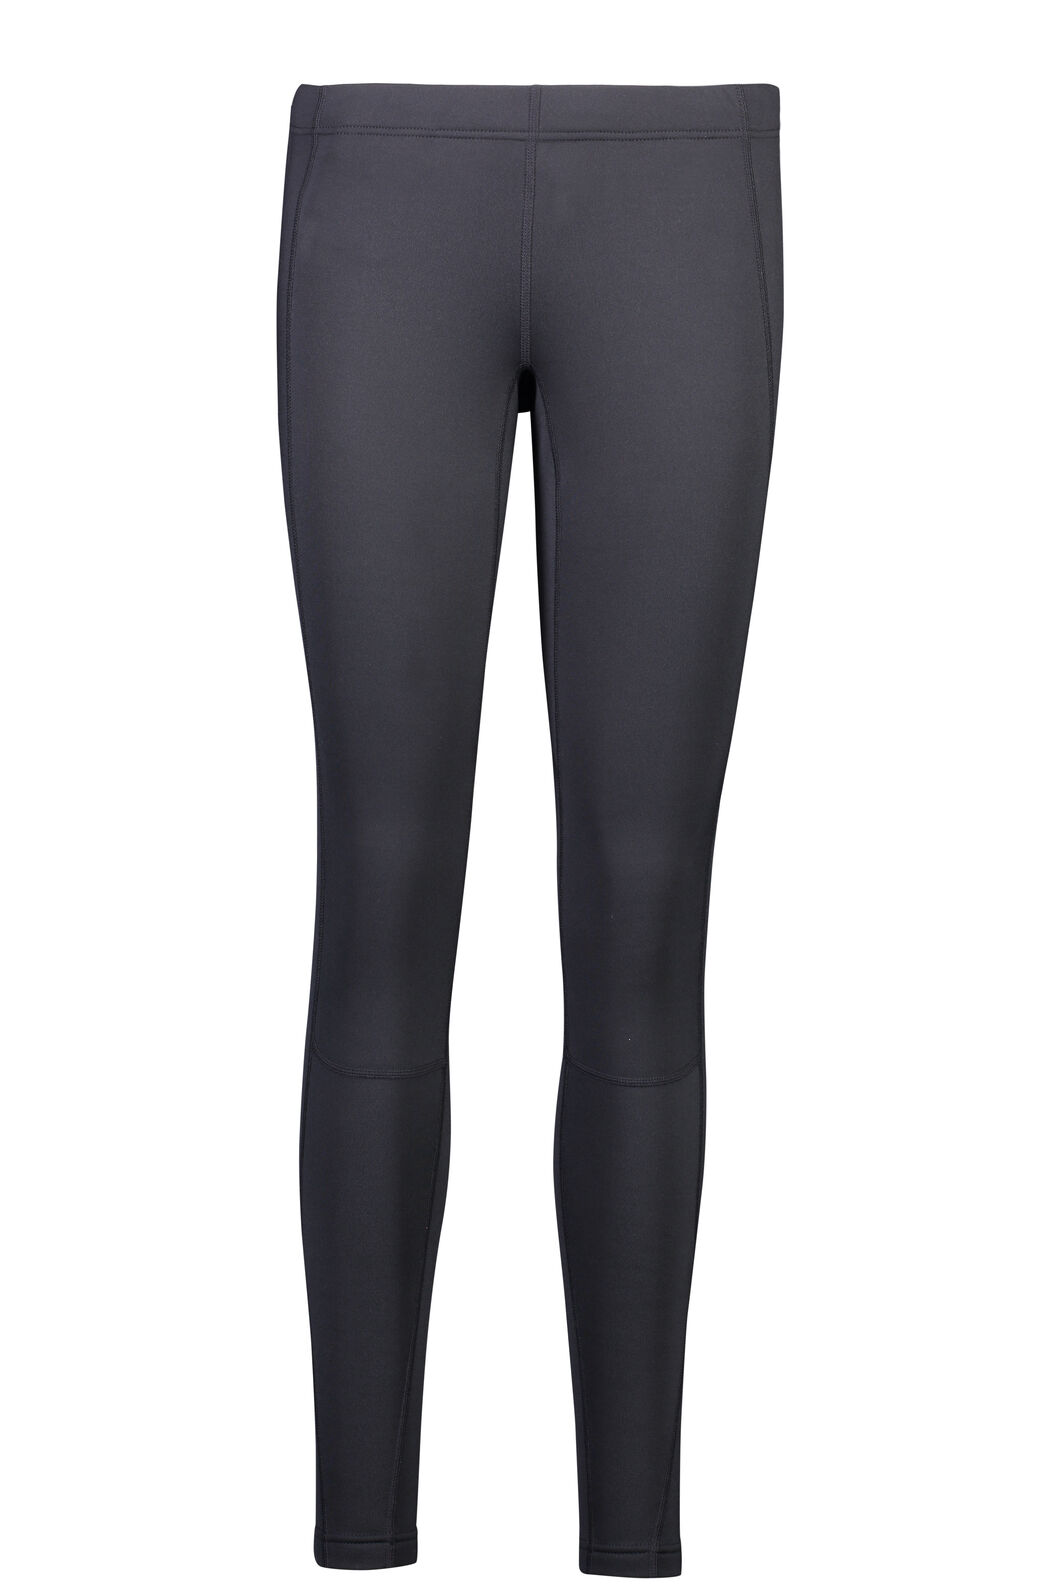 6e6035c4012ab Traverse Fleece Tights - Women's, Black, hi-res